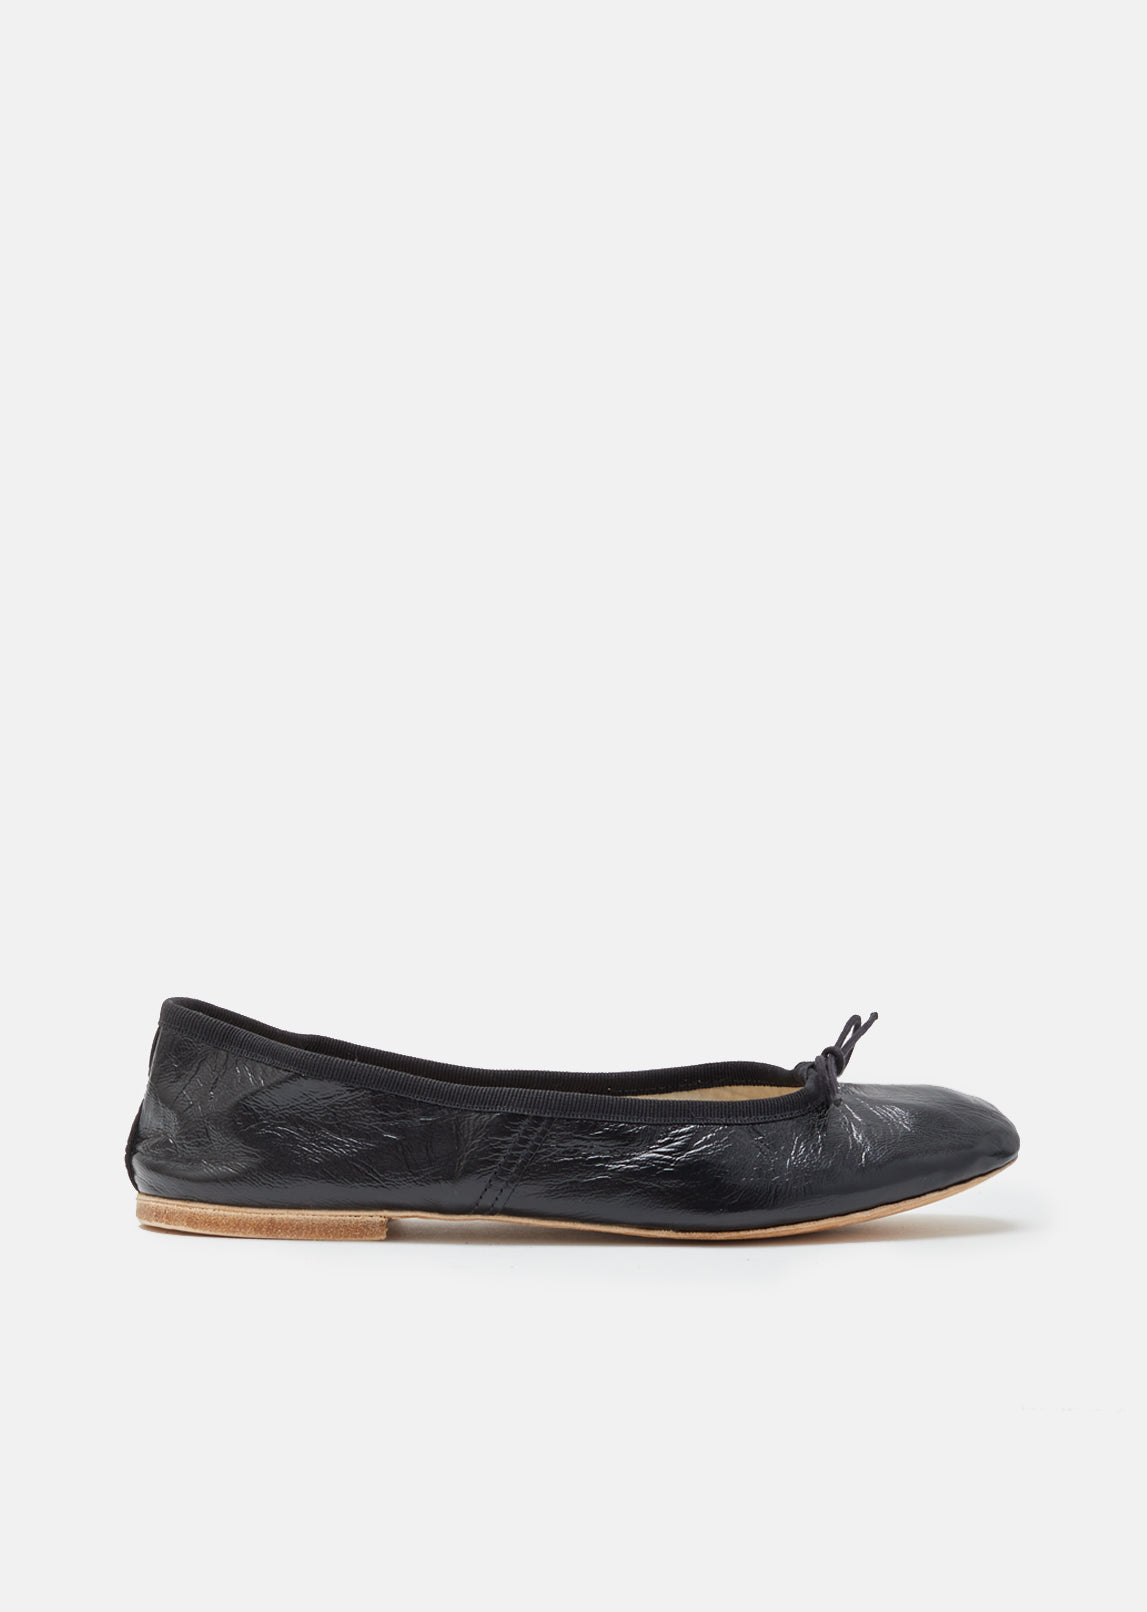 Ballet Flats Ballerina Shoes for Women On Sale, Black, Leather, 2017, 3.5 Acne Studios